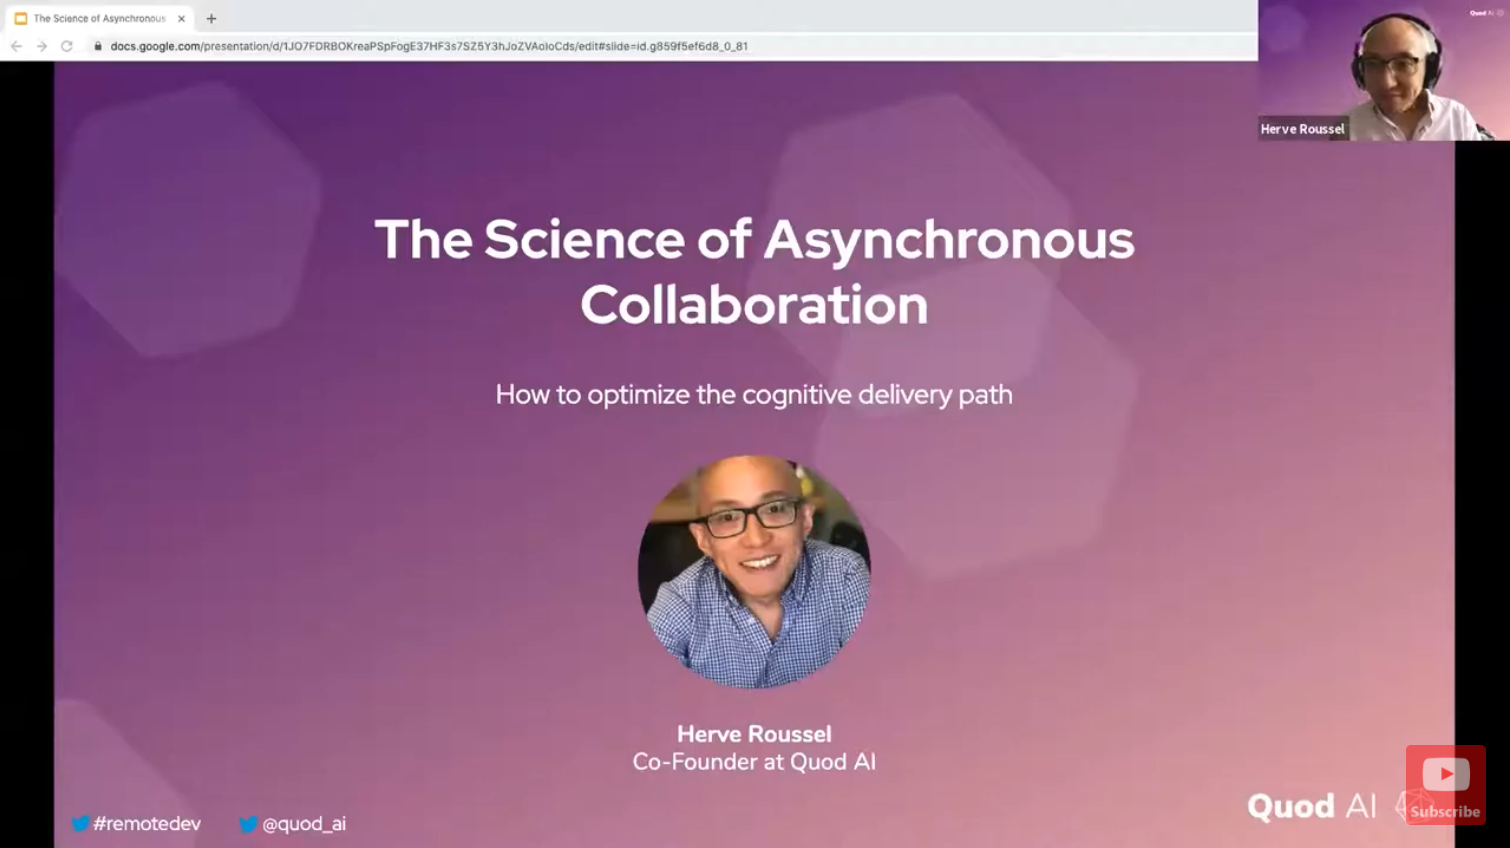 The Science of Asynchronous Collaboration